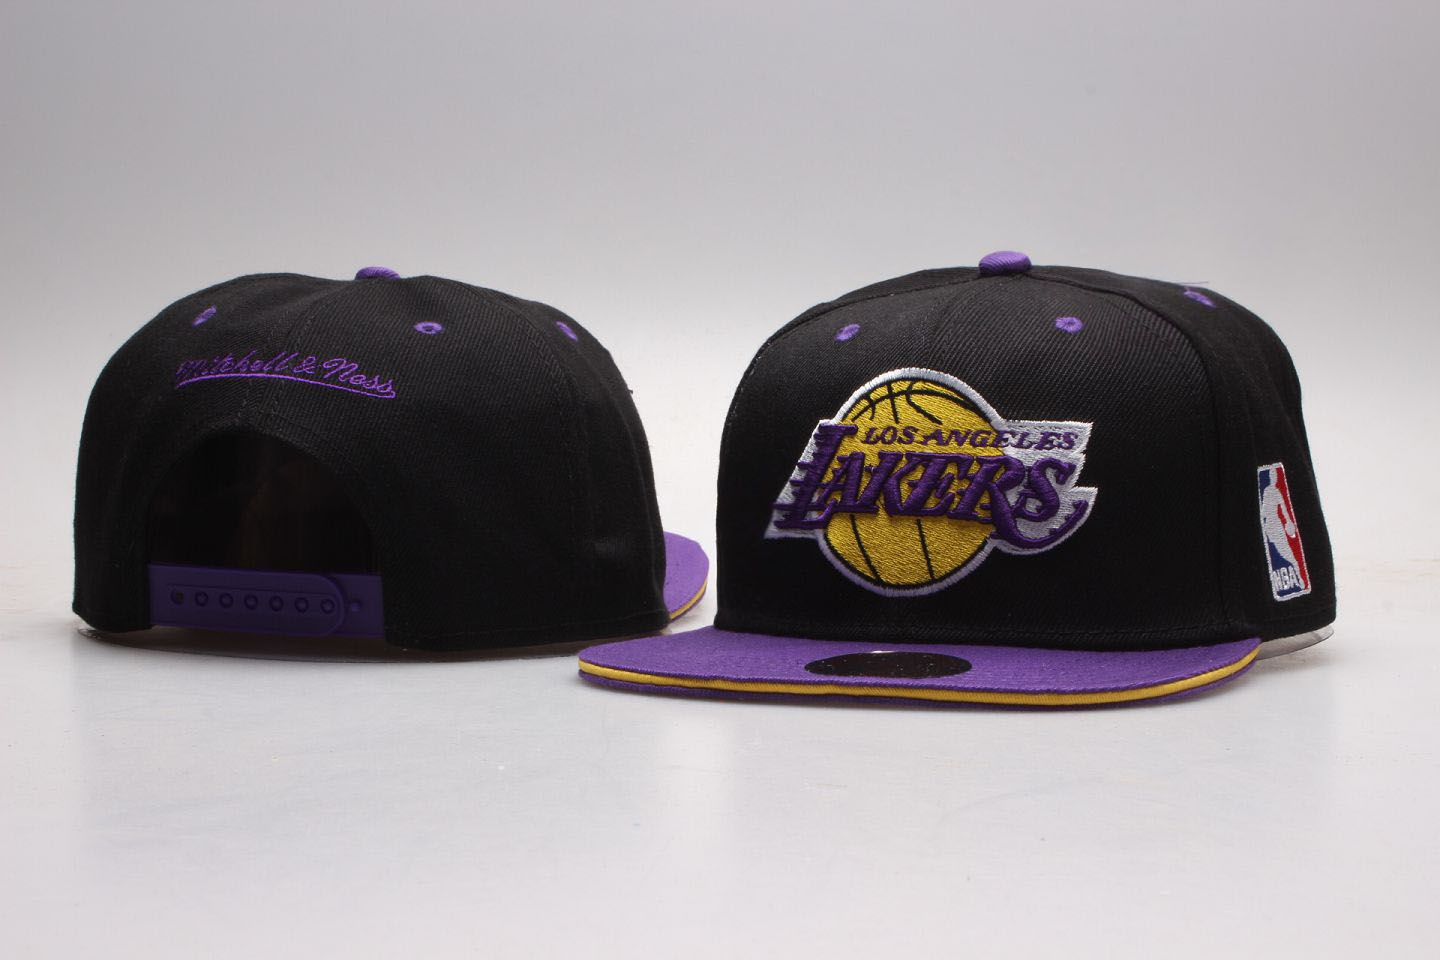 NBA Los Angeles Lakers Snapback hat 20181125